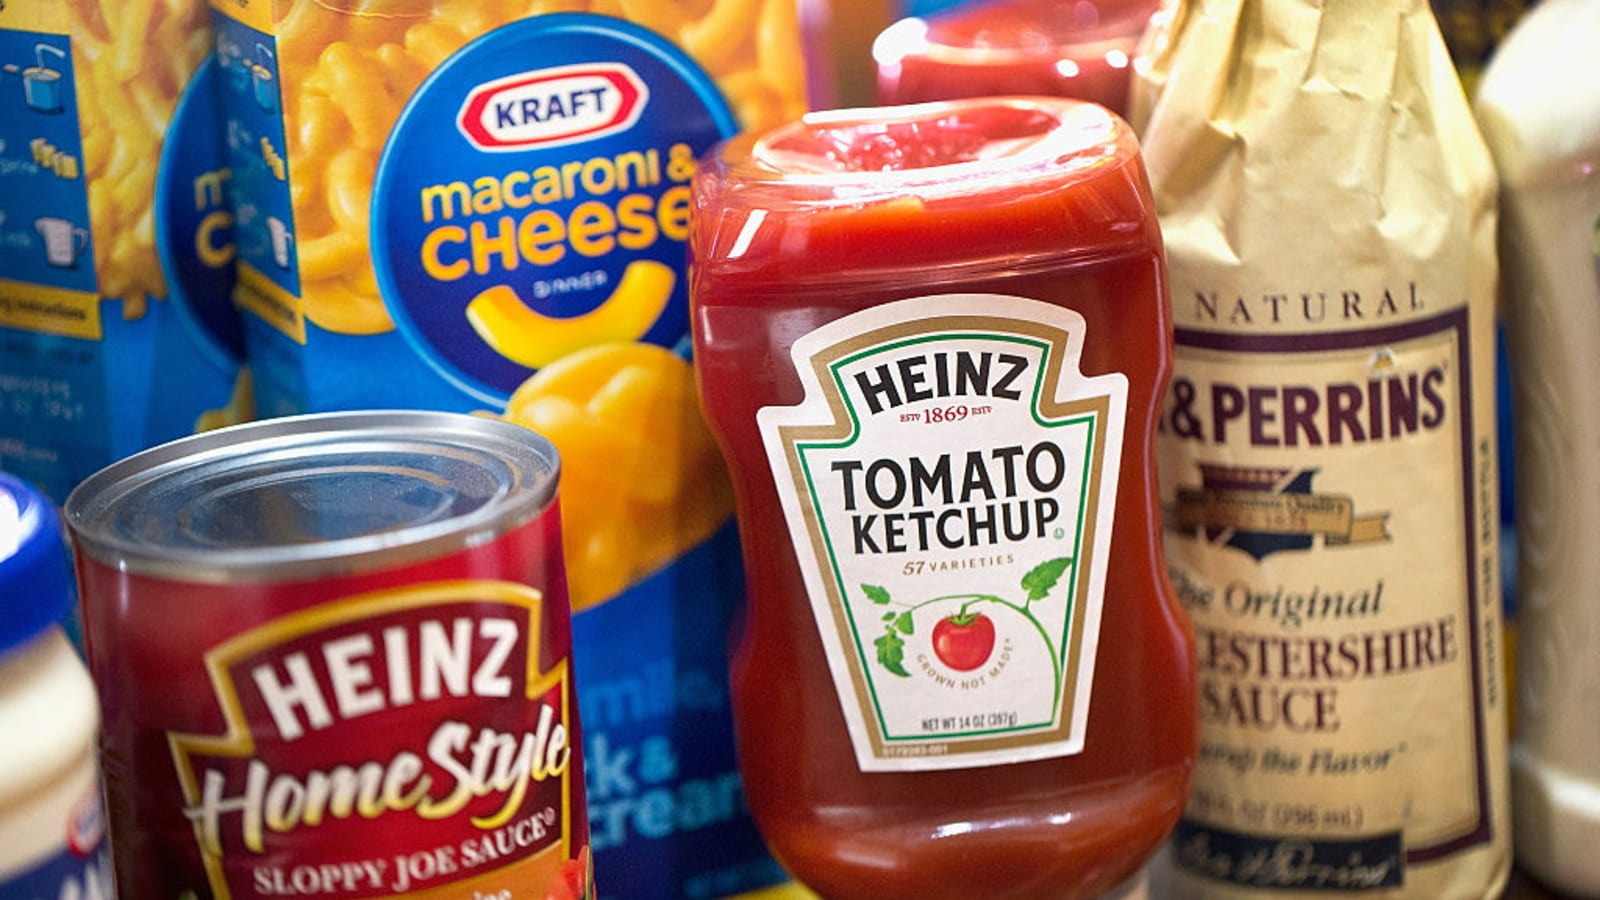 How to Get Free Samples of Kraft Heinz Products